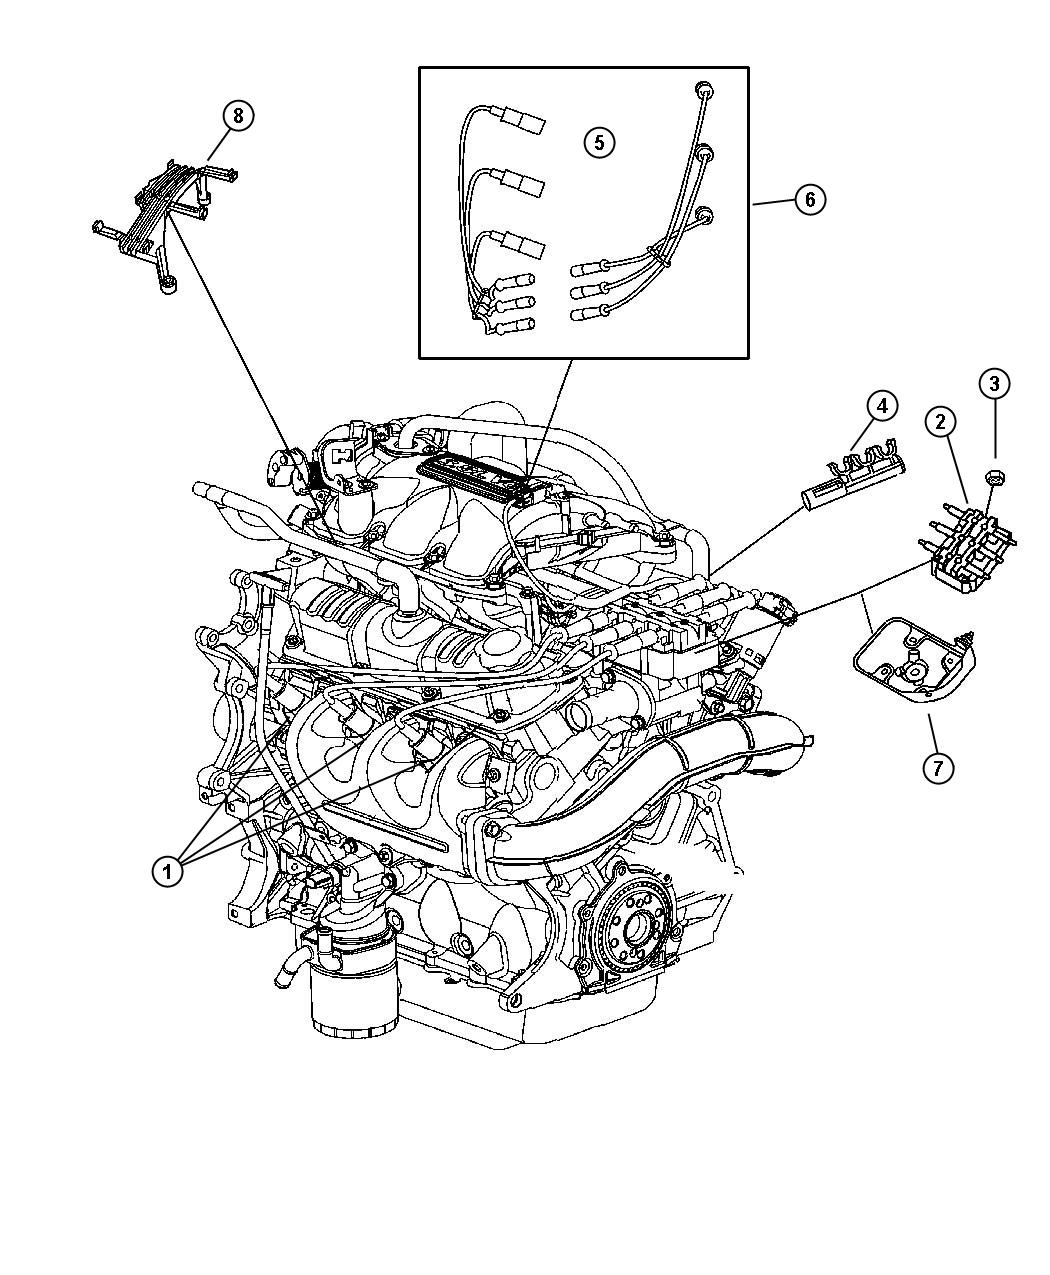 chrysler pacifica engine mount location chrysler free engine image for user manual